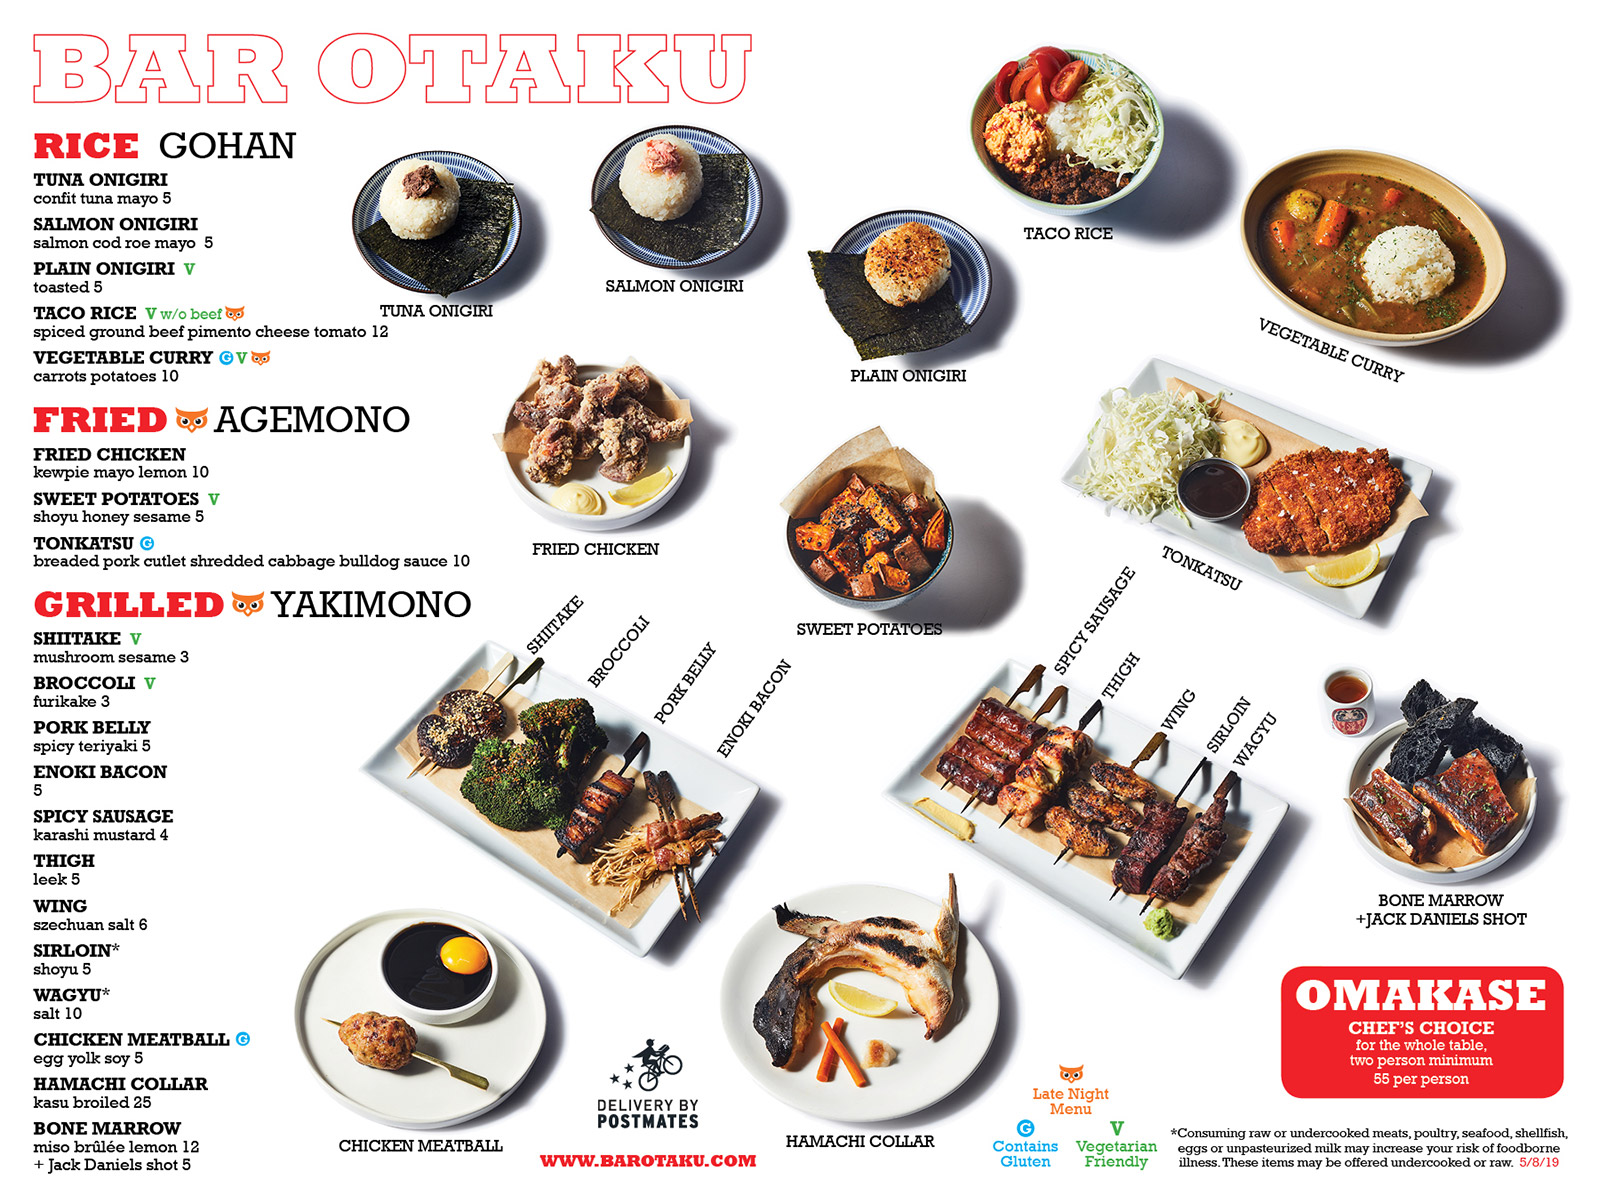 bar_otaku_food_menu_050819_pg2_1600w.jpg